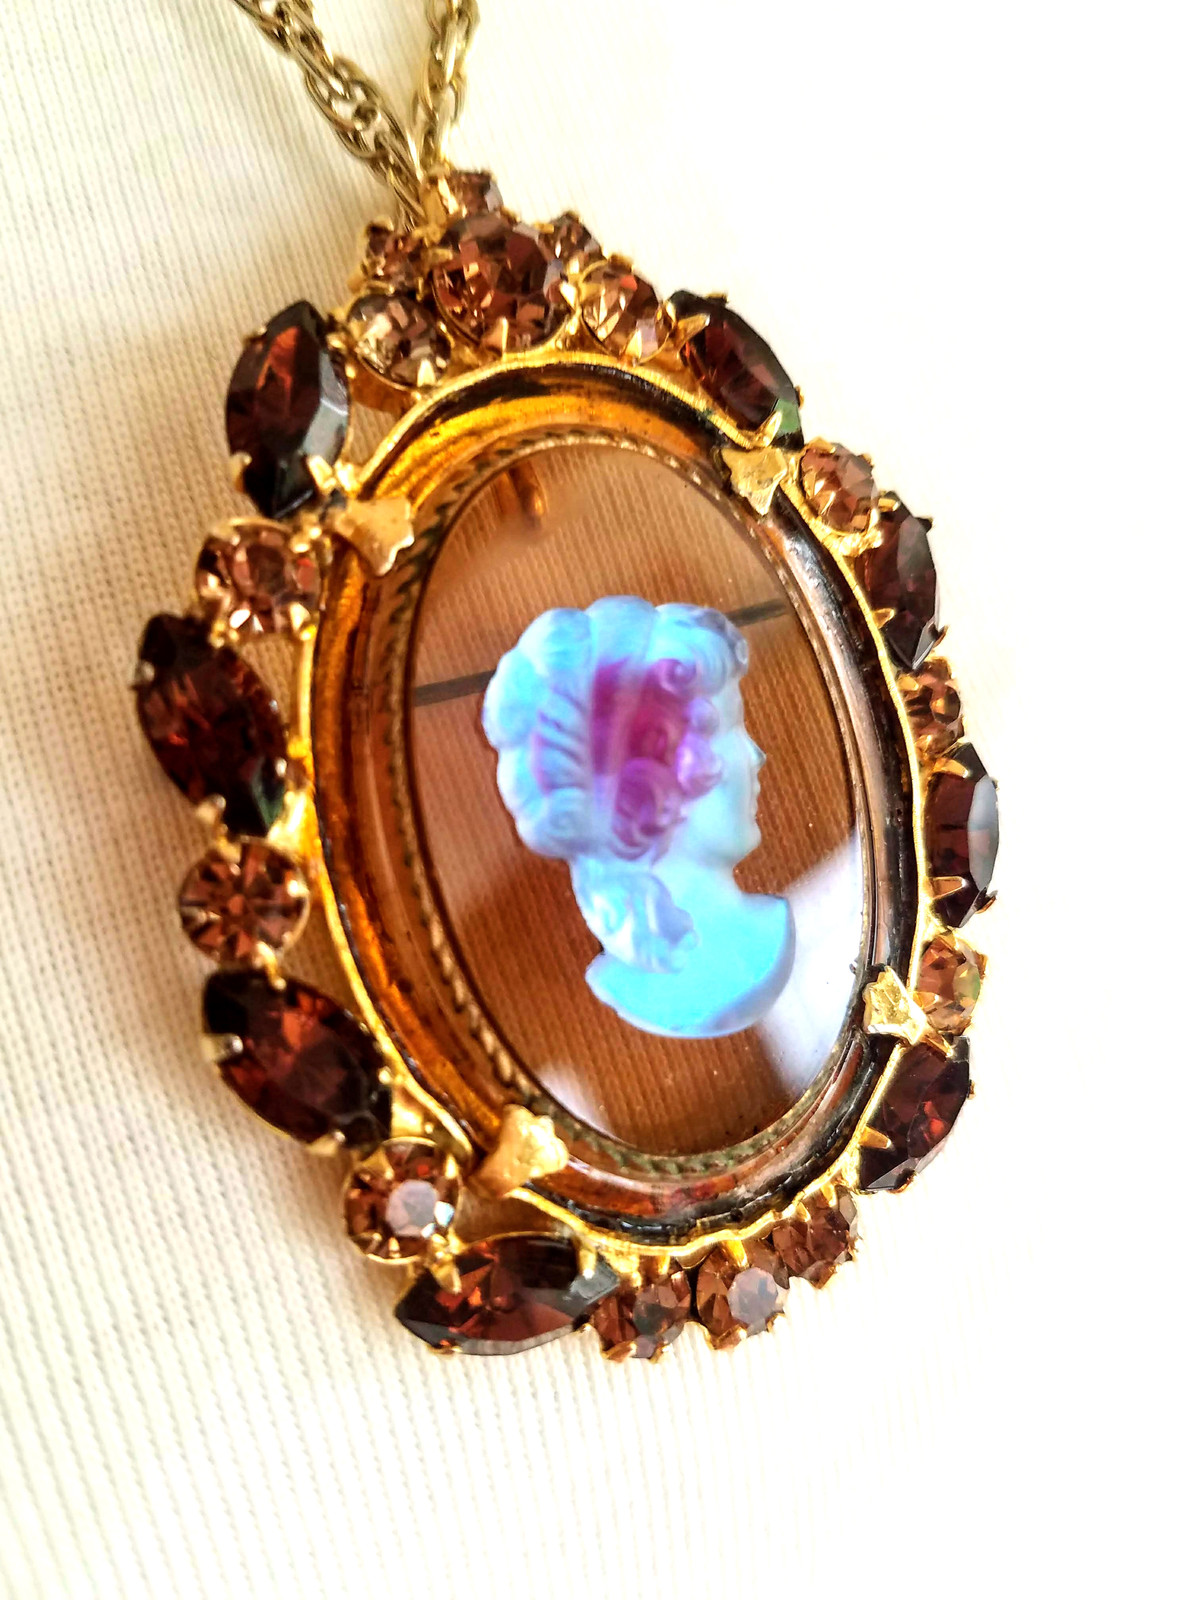 Vintage D&E Juliana Cameo Brooch Pin Pendant Necklace, Rhinestone Brooch Pendant image 11